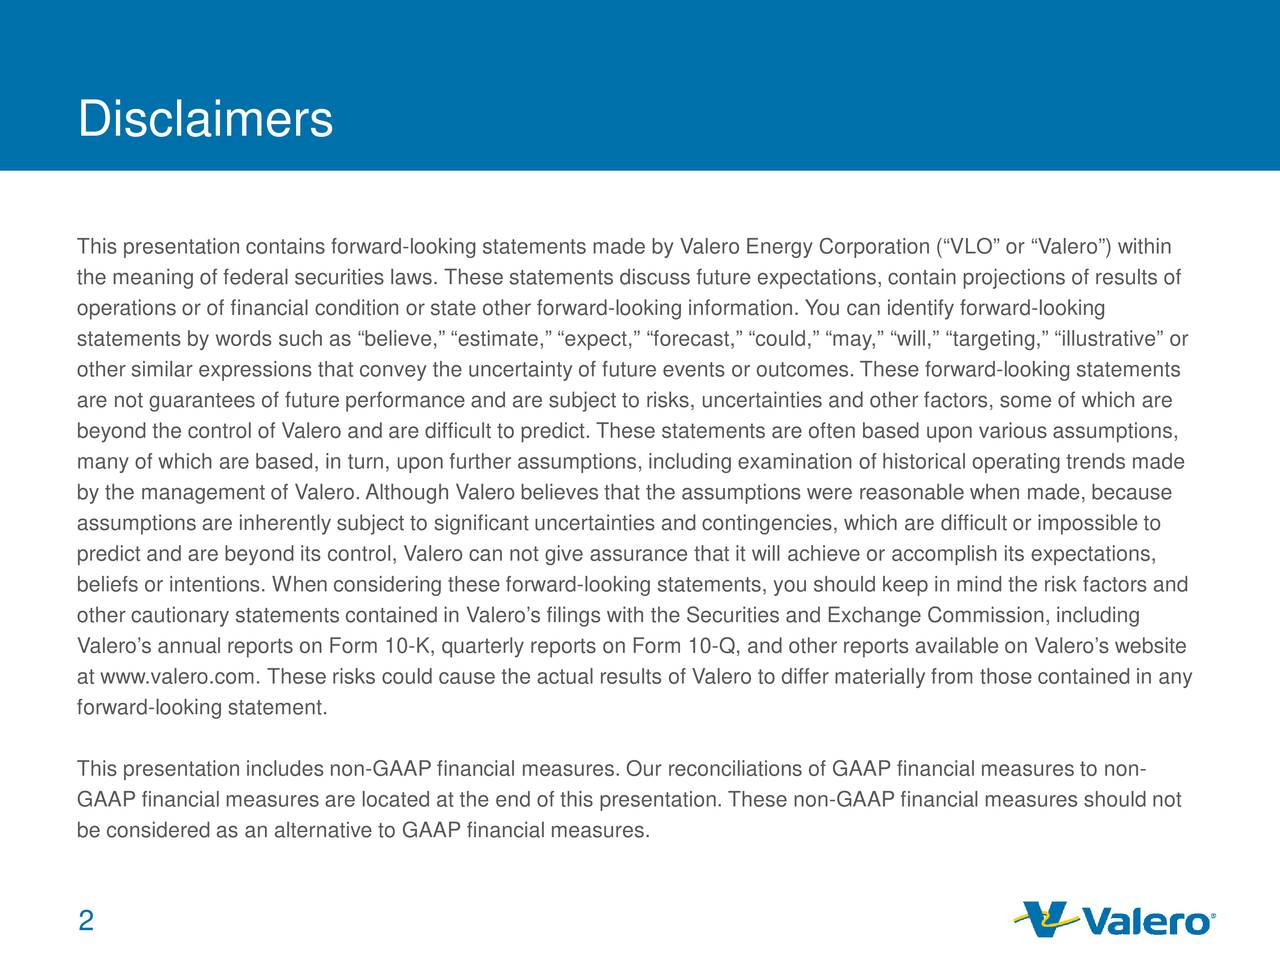 """This presentation contains forward-looking statements made by Valero Energy Corporation (""""VLO"""" or """"Valero"""") within the meaning of federal securities laws. These statements discuss future expectations, contain projections of results of operations or of financial condition or state other forward-looking information. You can identify forward-looking statements by words such as """"believe,"""" """"estimate,"""" """"expect,"""" """"forecast,"""" """"could,"""" """"may,"""" """"will,"""" """"targeting,"""" """"illustrative"""" or other similar expressions that convey the uncertainty of future events or outcomes. These forward-looking statements are not guarantees of future performance and are subject to risks, uncertainties and other factors, some of which are beyond the control of Valero and are difficult to predict. These statements are often based upon various assumptions, many of which are based, in turn, upon further assumptions, including examination of historical operating trends made by the management of Valero. Although Valero believes that the assumptions were reasonable when made, because assumptions are inherently subject to significant uncertainties and contingencies, which are difficult or impossible to predict and are beyond its control, Valero can not give assurance that it will achieve or accomplish its expectations, beliefs or intentions. When considering these forward-looking statements, you should keep in mind the risk factors and other cautionary statements contained in Valero's filings with the Securities and Exchange Commission, including Valero's annual reports on Form 10-K, quarterly reports on Form 10-Q, and other reports available on Valero's website at www.valero.com. These risks could cause the actual results of Valero to differ materially from those contained in any forward-looking statement. This presentation includes non-GAAP financial measures. Our reconciliations of GAAP financial measures to non- GAAP financial measures are located at the end of this presentation. These non-GAAP financial """